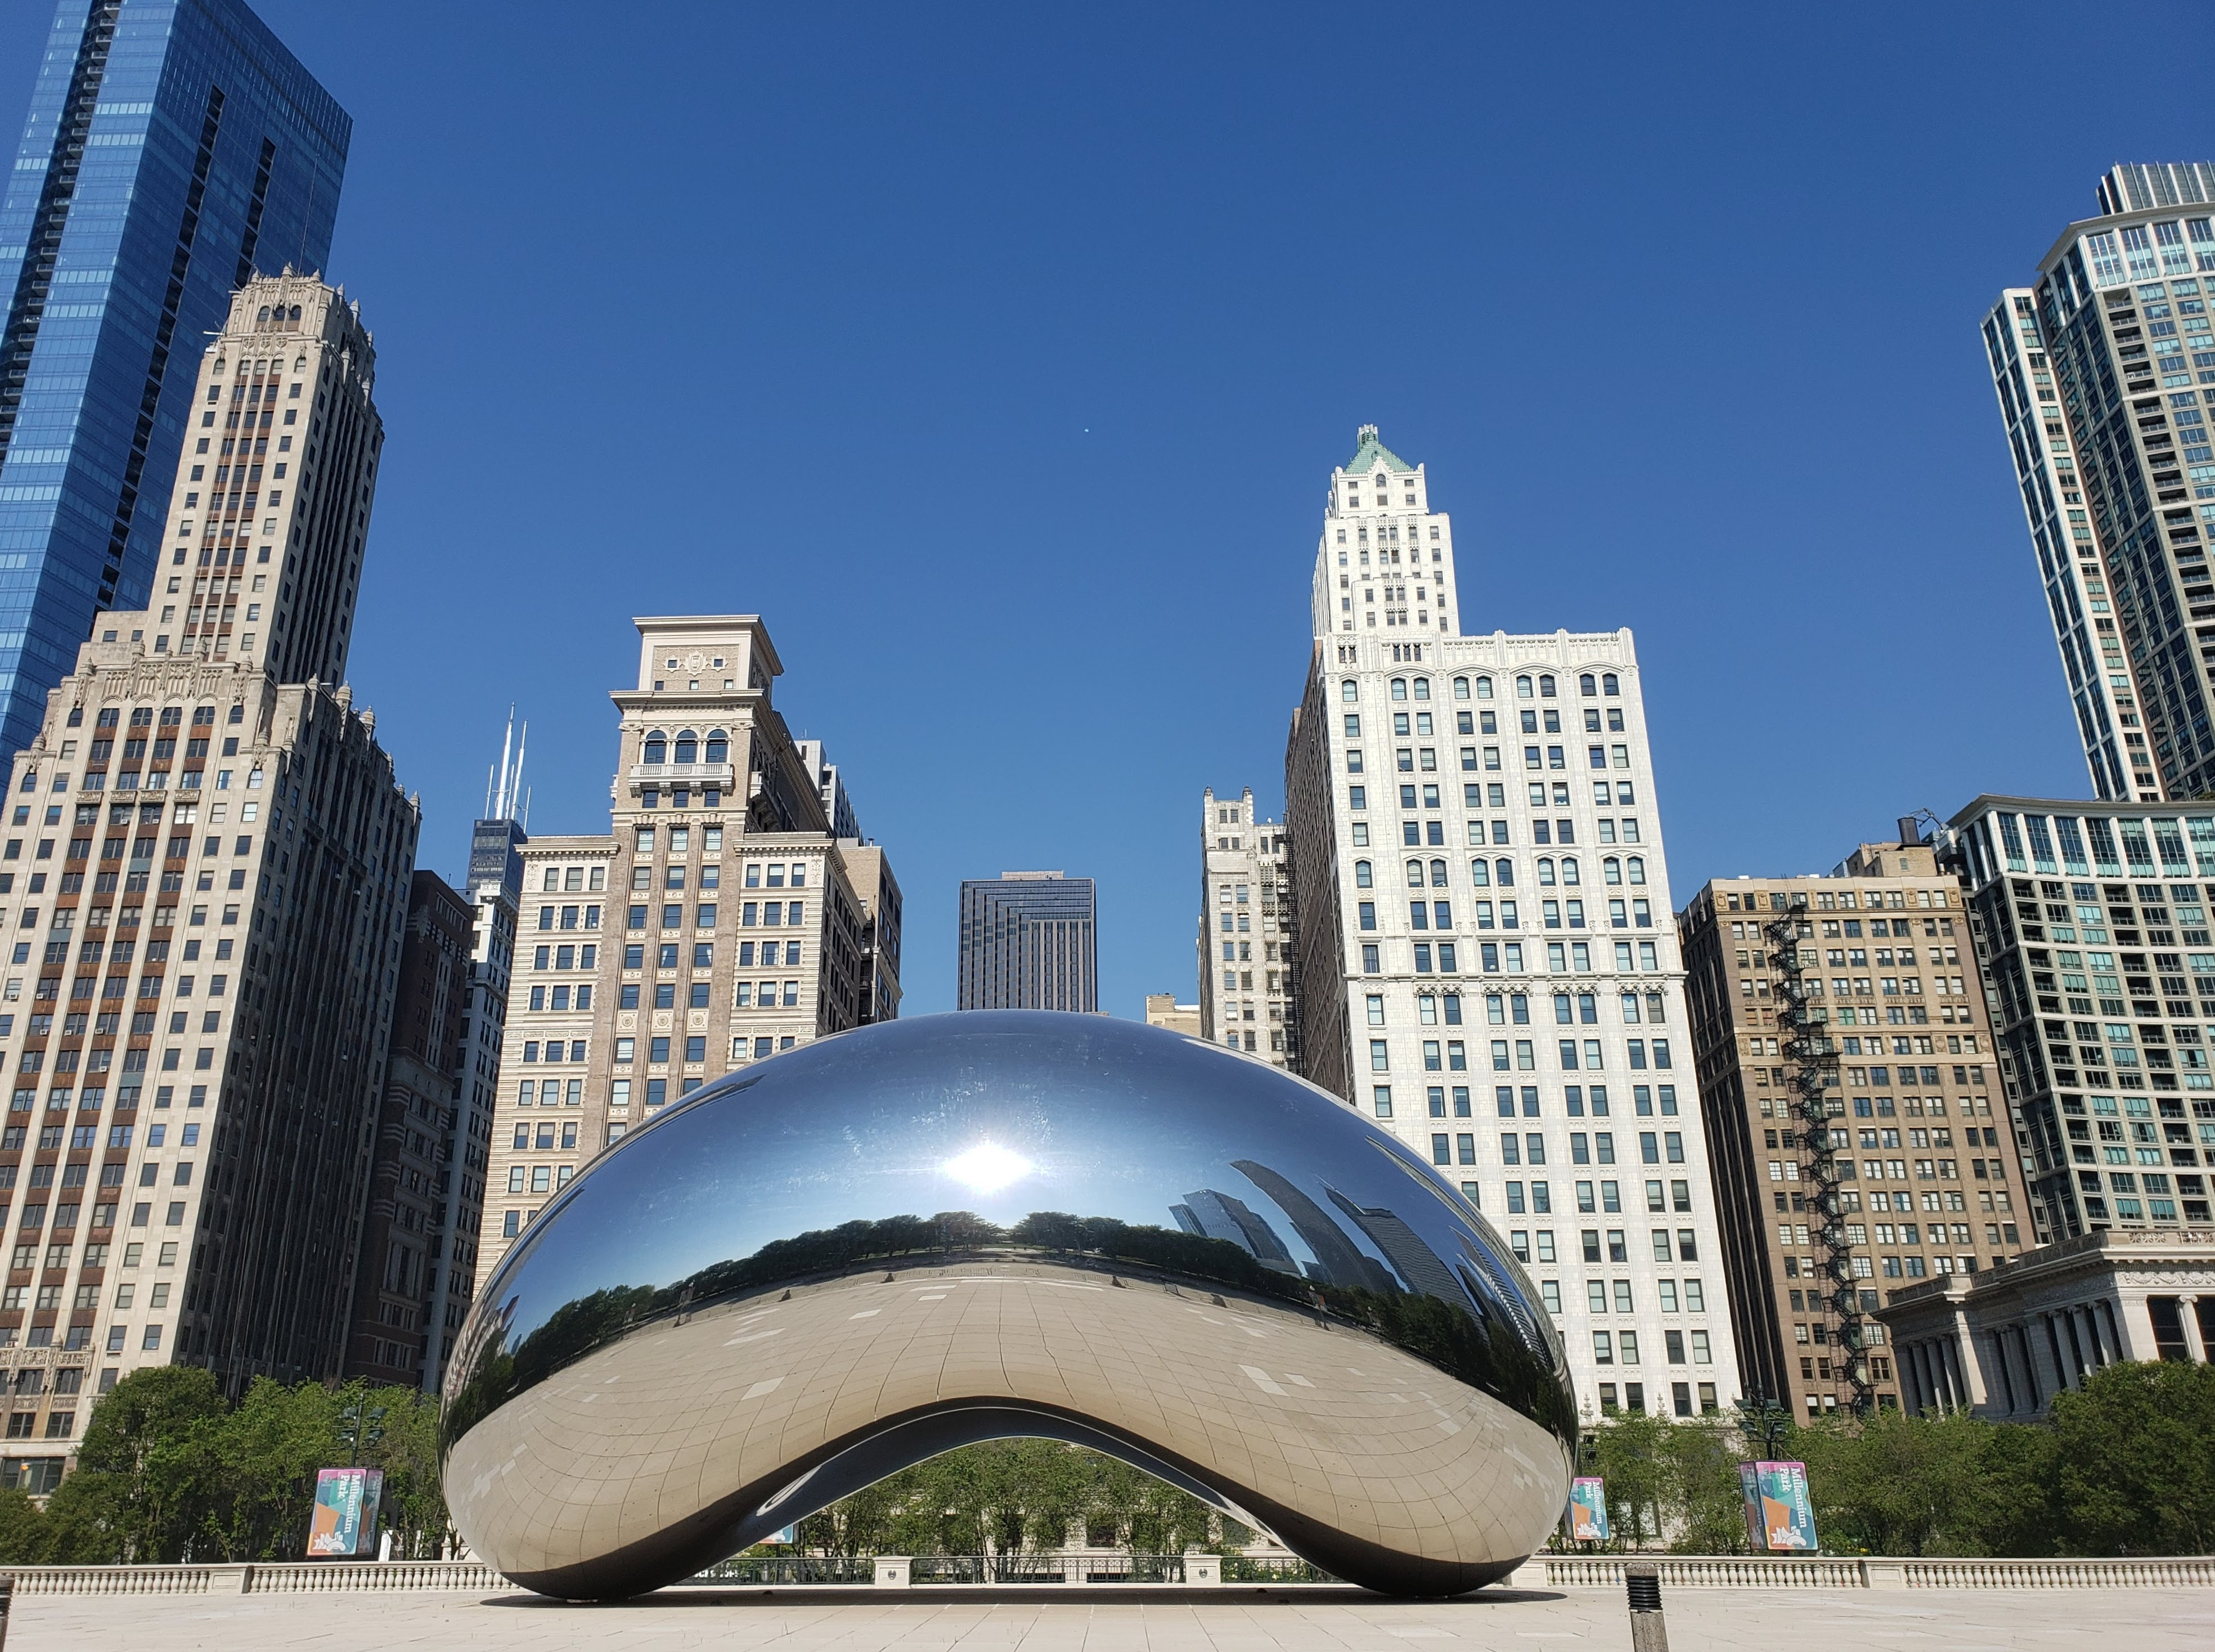 The iconic bean during the height of a global pandemic. Clicked during our final visit to (a desolate) downtown.